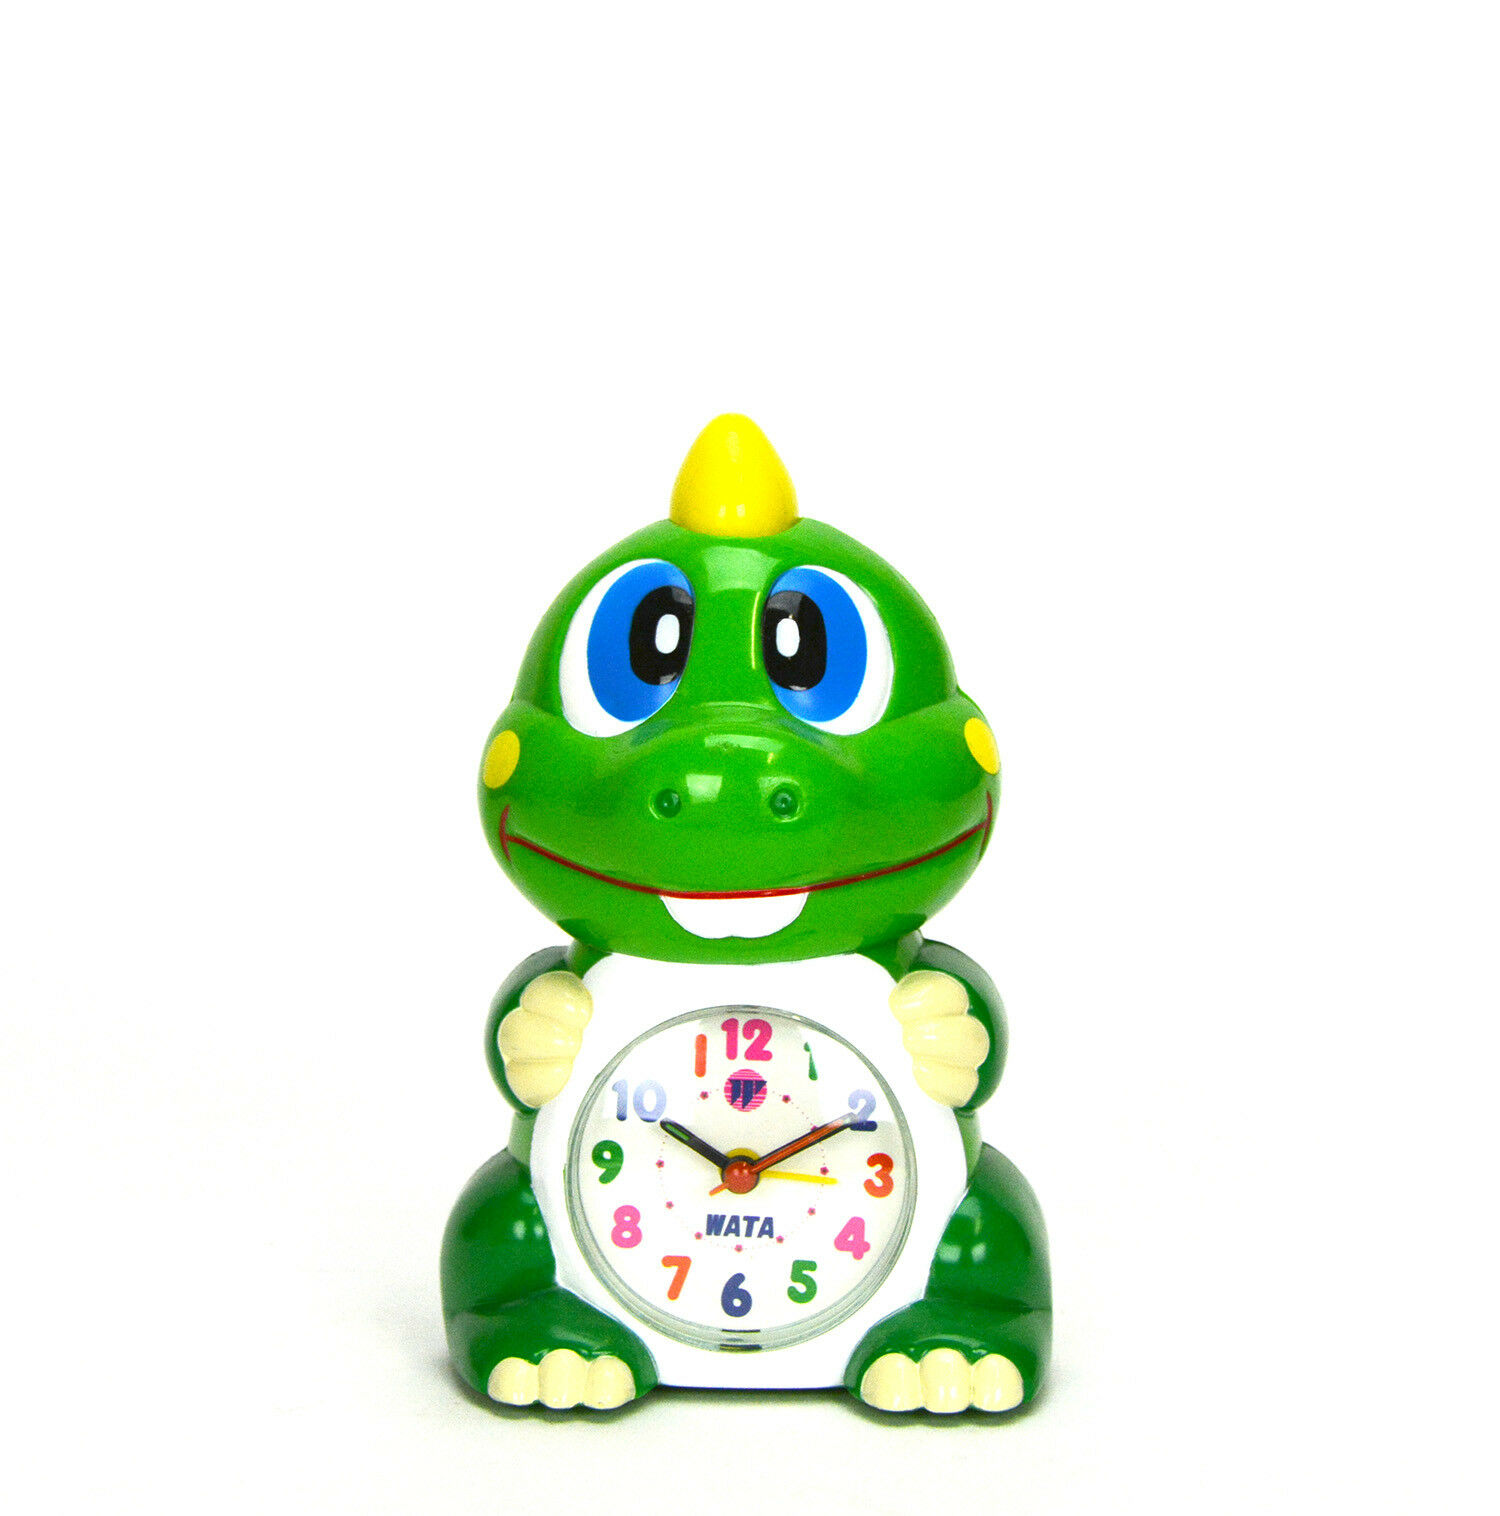 Relieving Bucktooth Dinosaur Kids Musical Alarm Clock Children Roomdecoration Available See More Bucktooth Dinosaur Kids Musical Alarm Clock Children Room baby Kids Alarm Clock